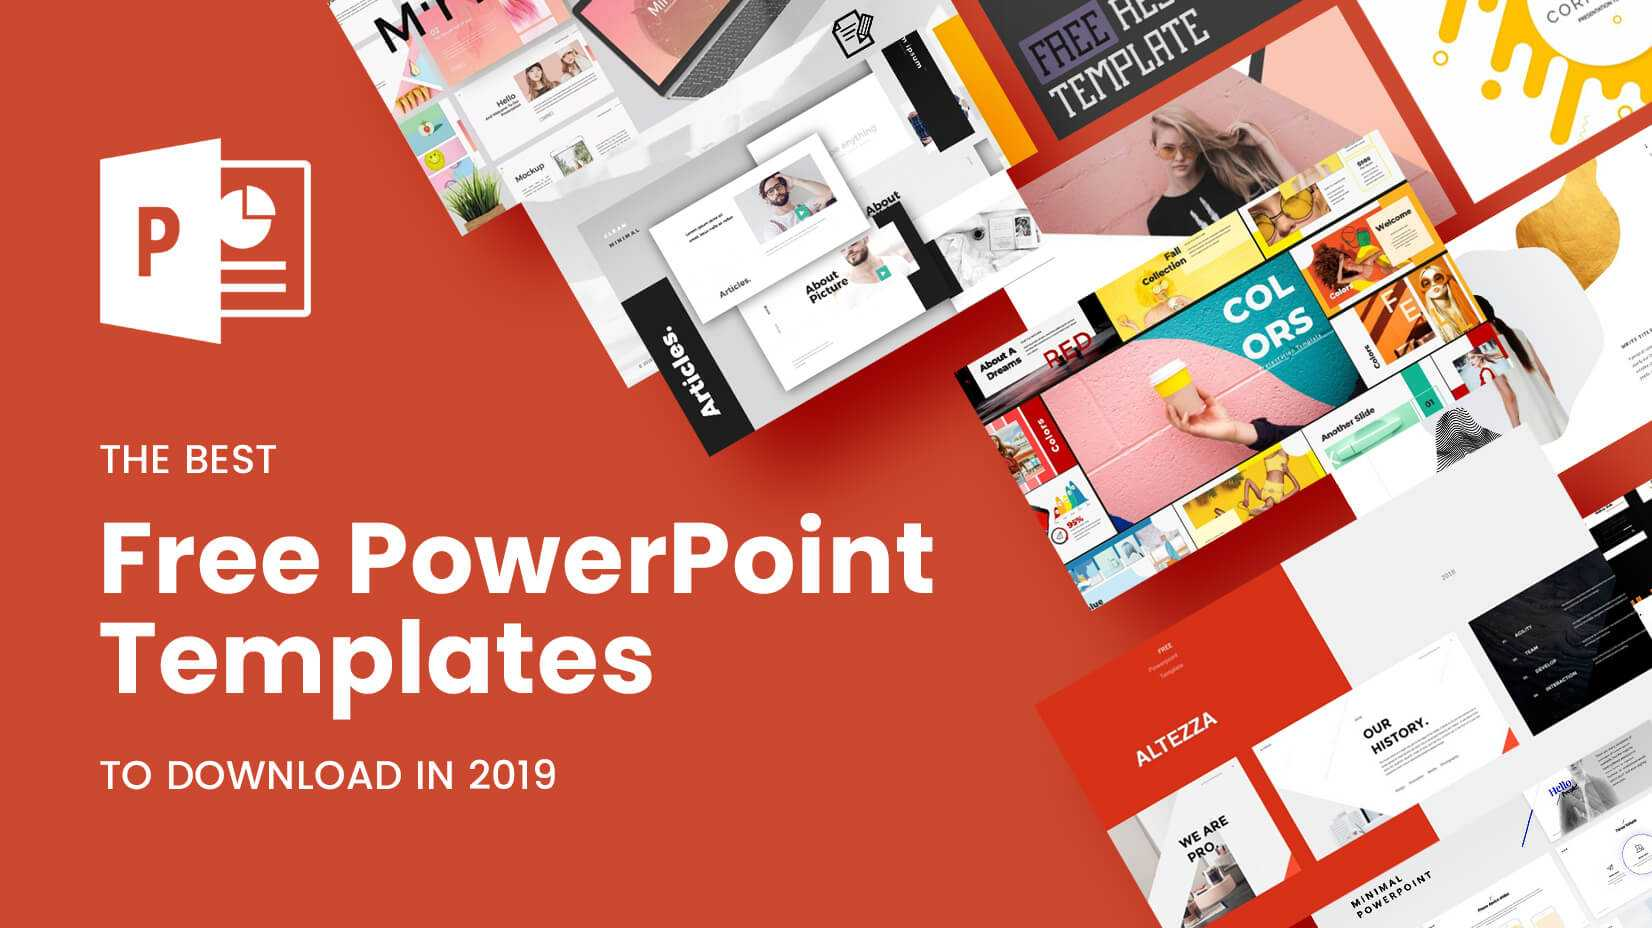 The Best Free Powerpoint Templates To Download In 2019 Inside Powerpoint Slides Design Templates For Free